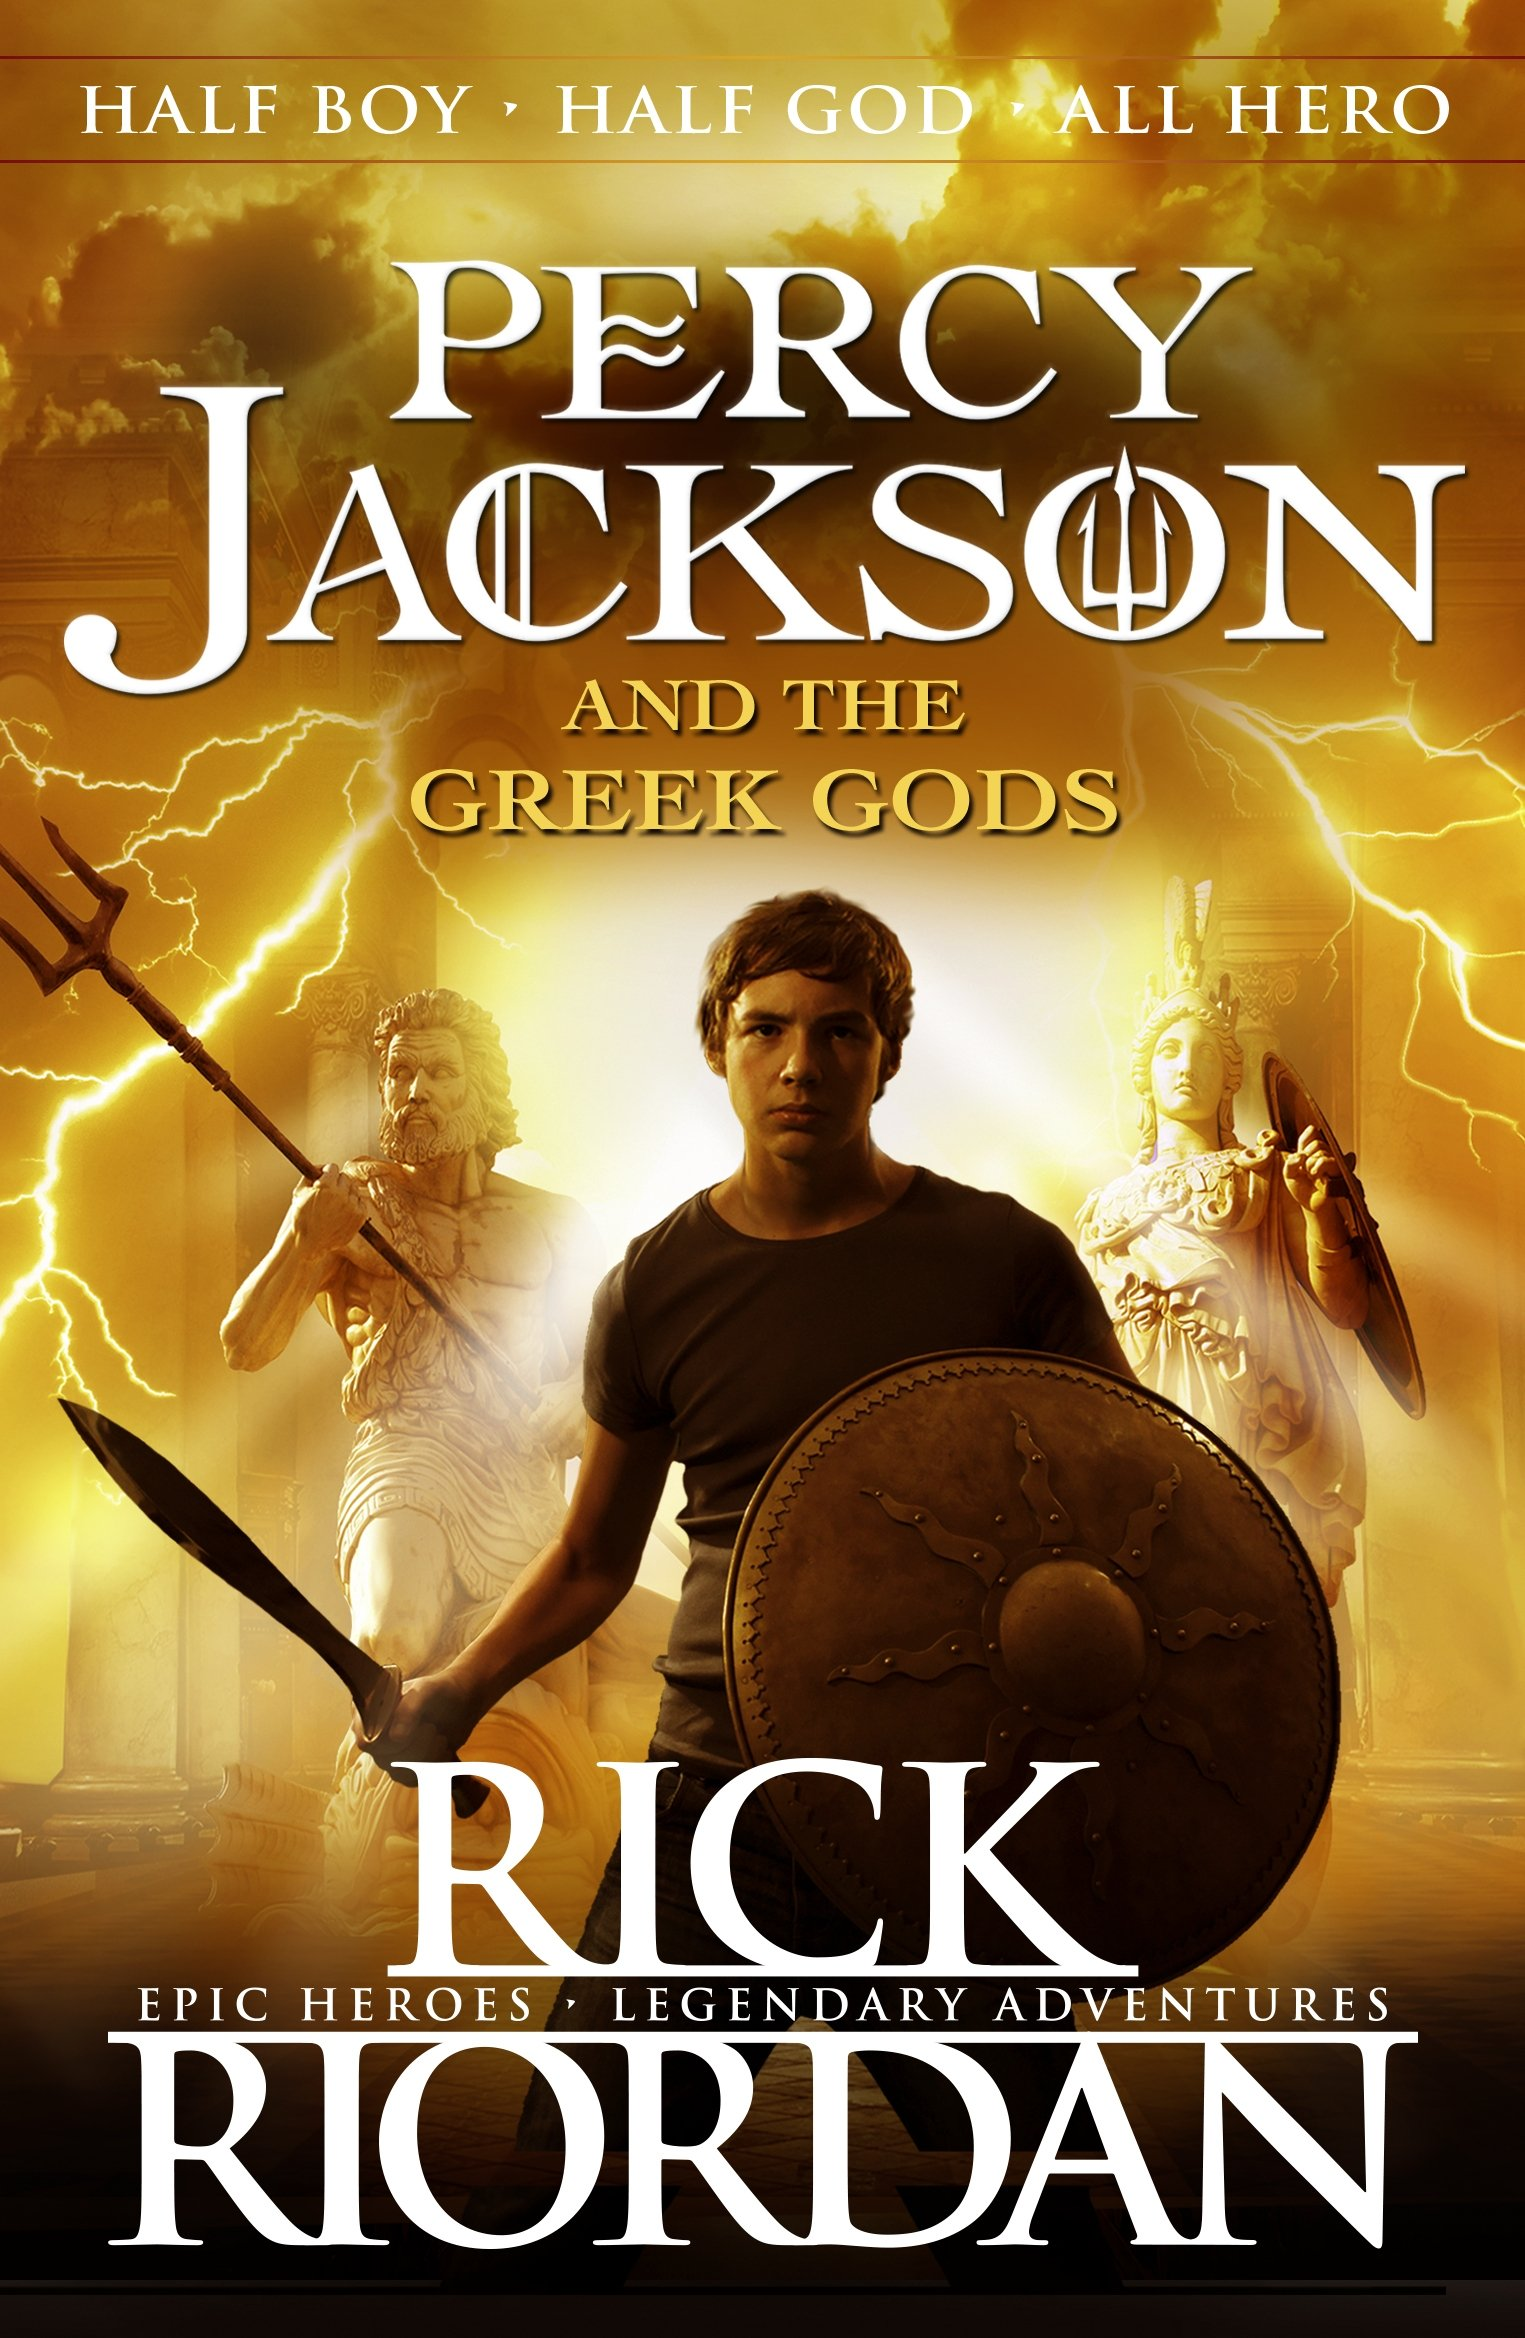 percy jackson movie download in tamil hd